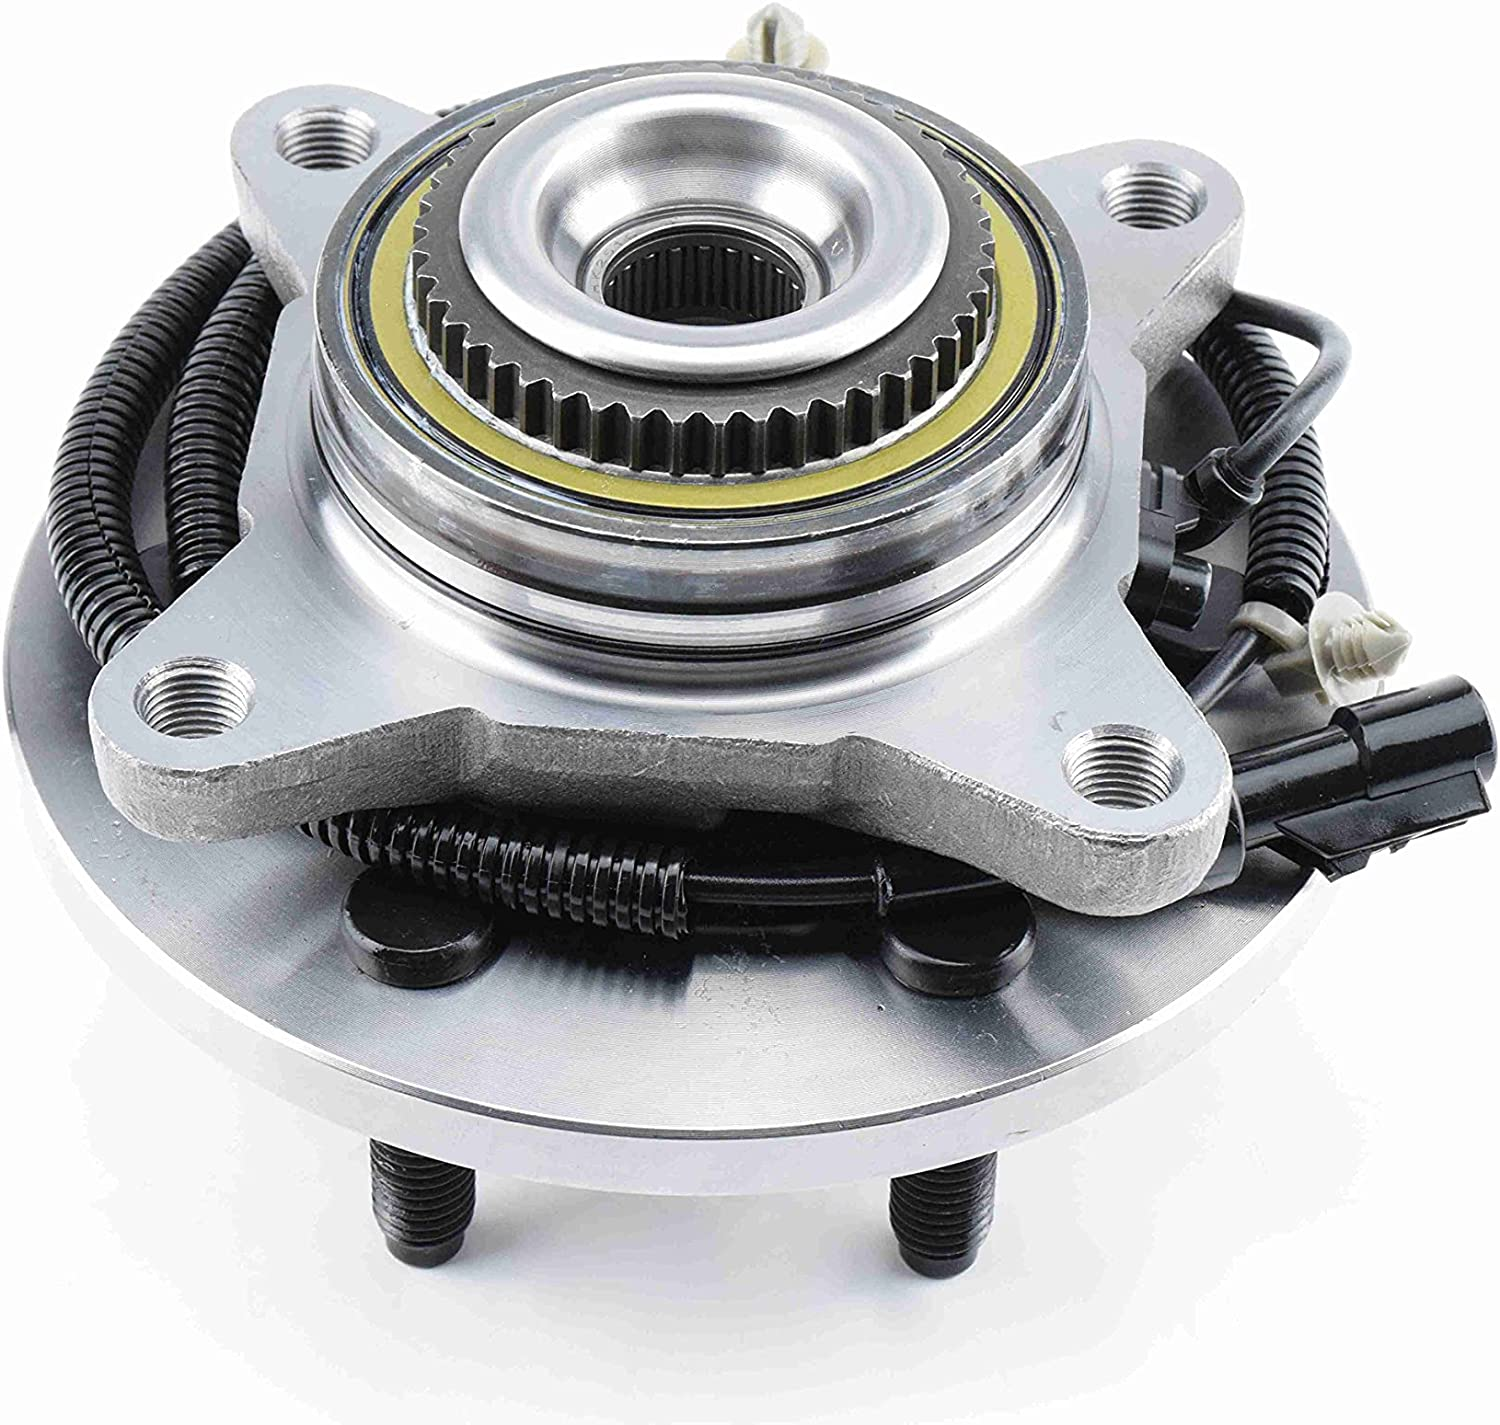 ADIGARAUTO 515119 Great interest 4WD Front Popular standard Wheel Hub and Rep Assembly Bearing